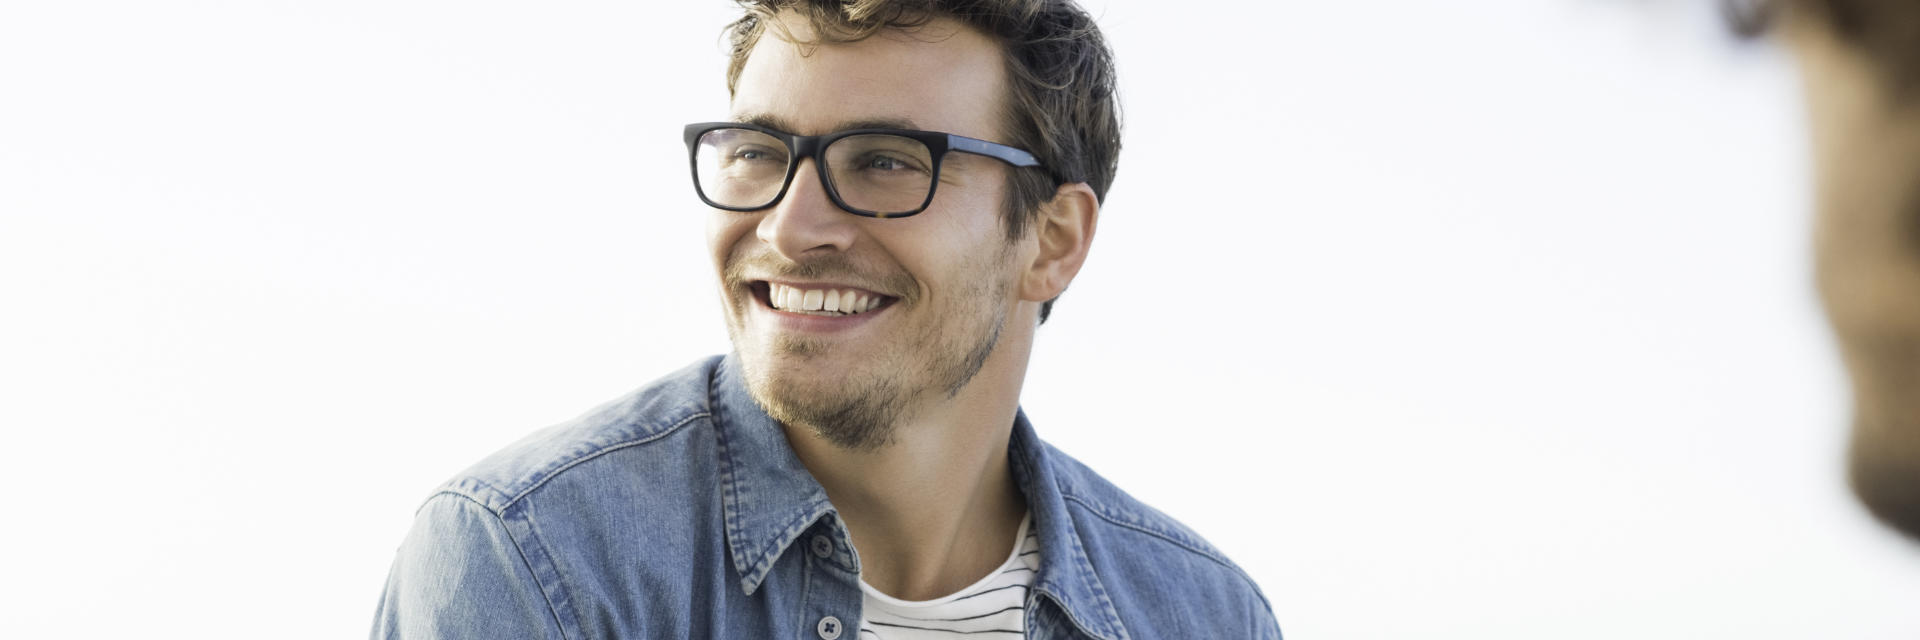 happy athletic man with glasses laughing